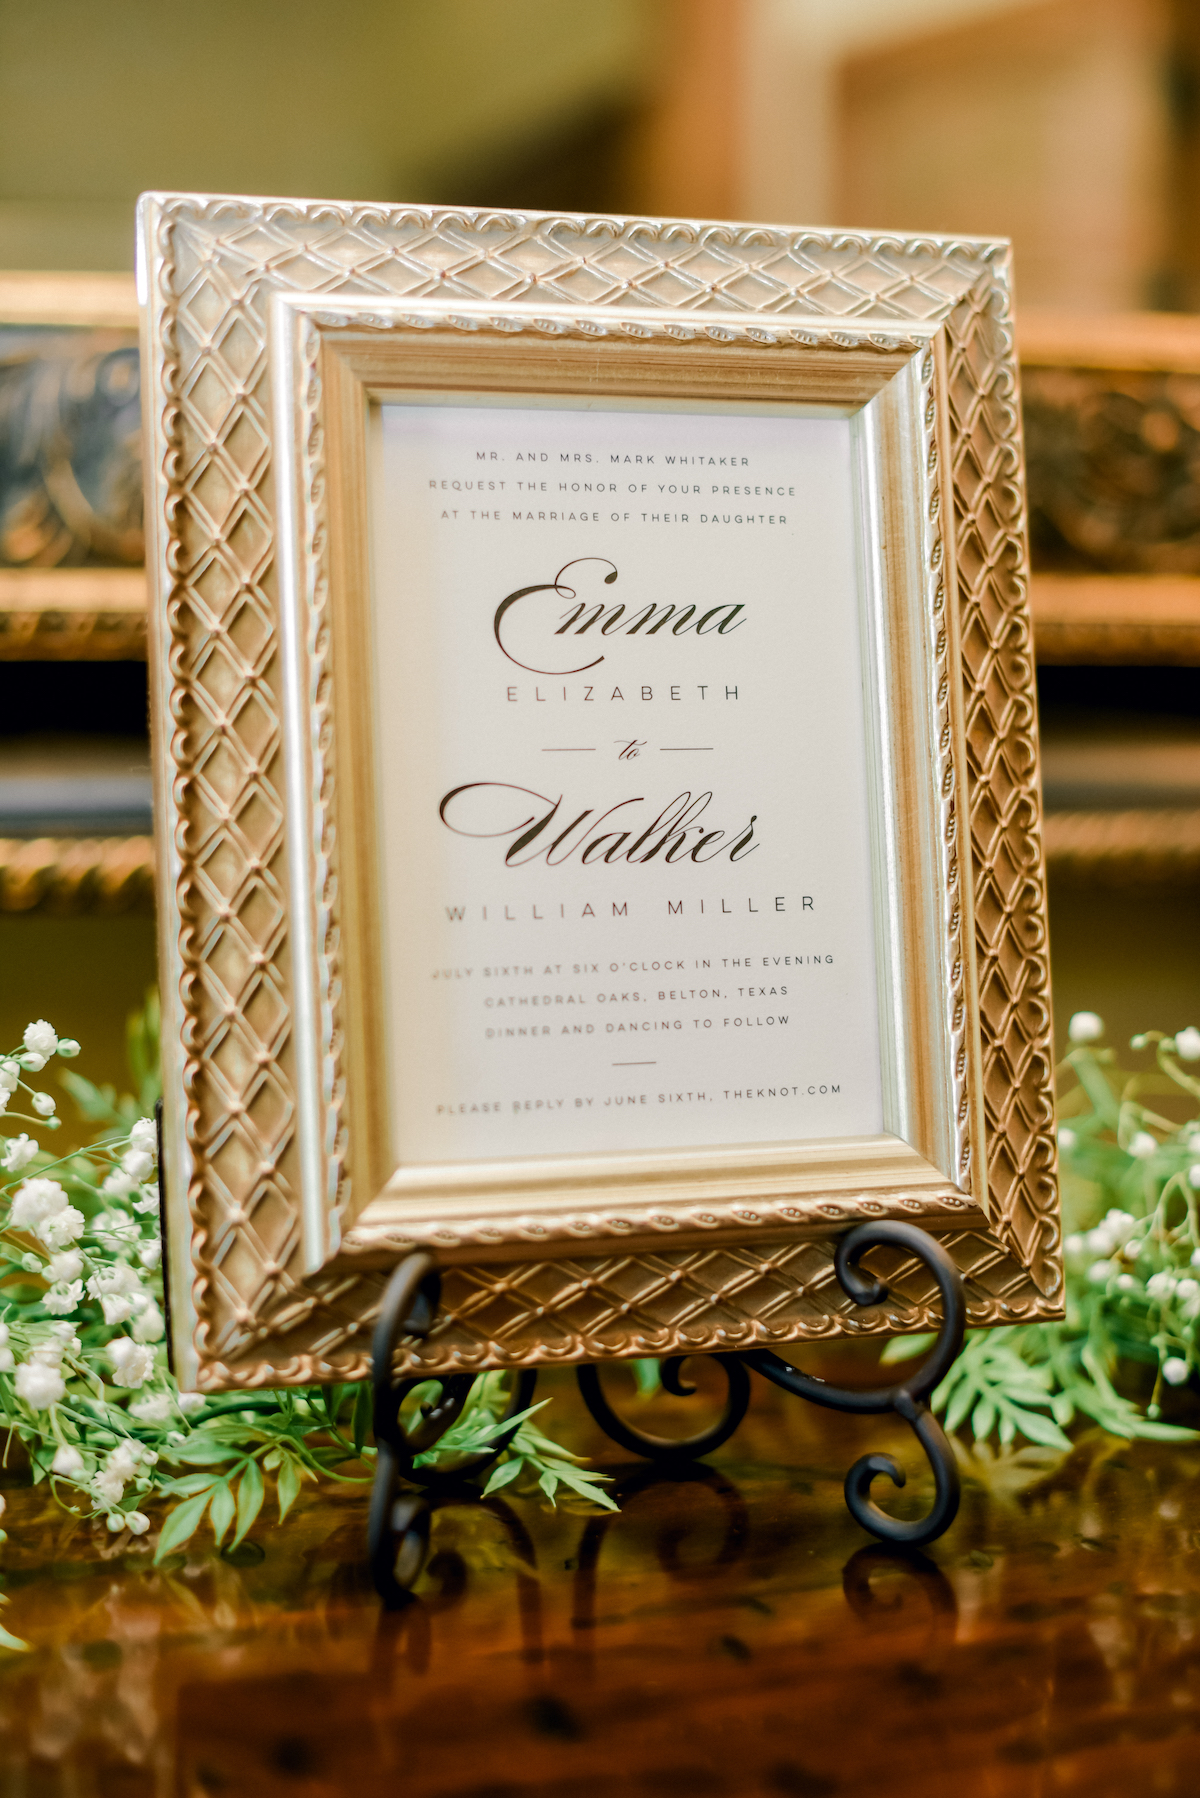 Ceremony Decor and Signage